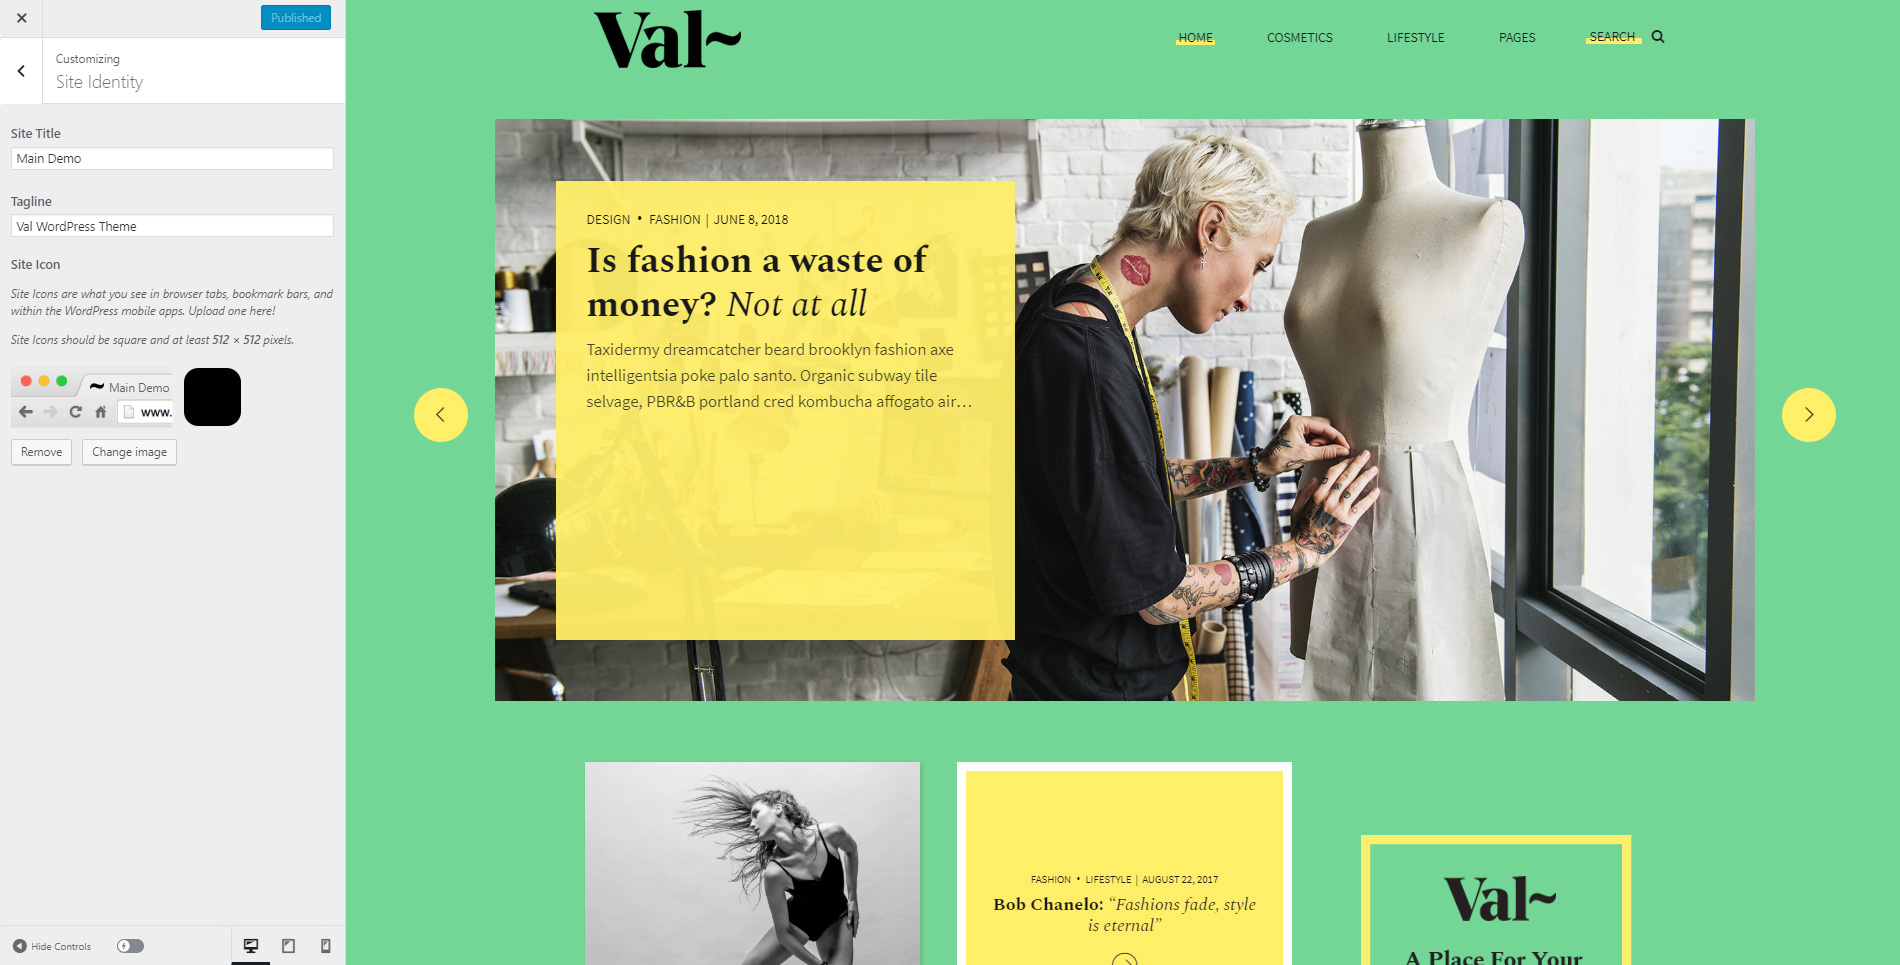 https://documentation.bold-themes.com/val/wp-content/uploads/sites/36/2018/12/val-customize-04.jpg